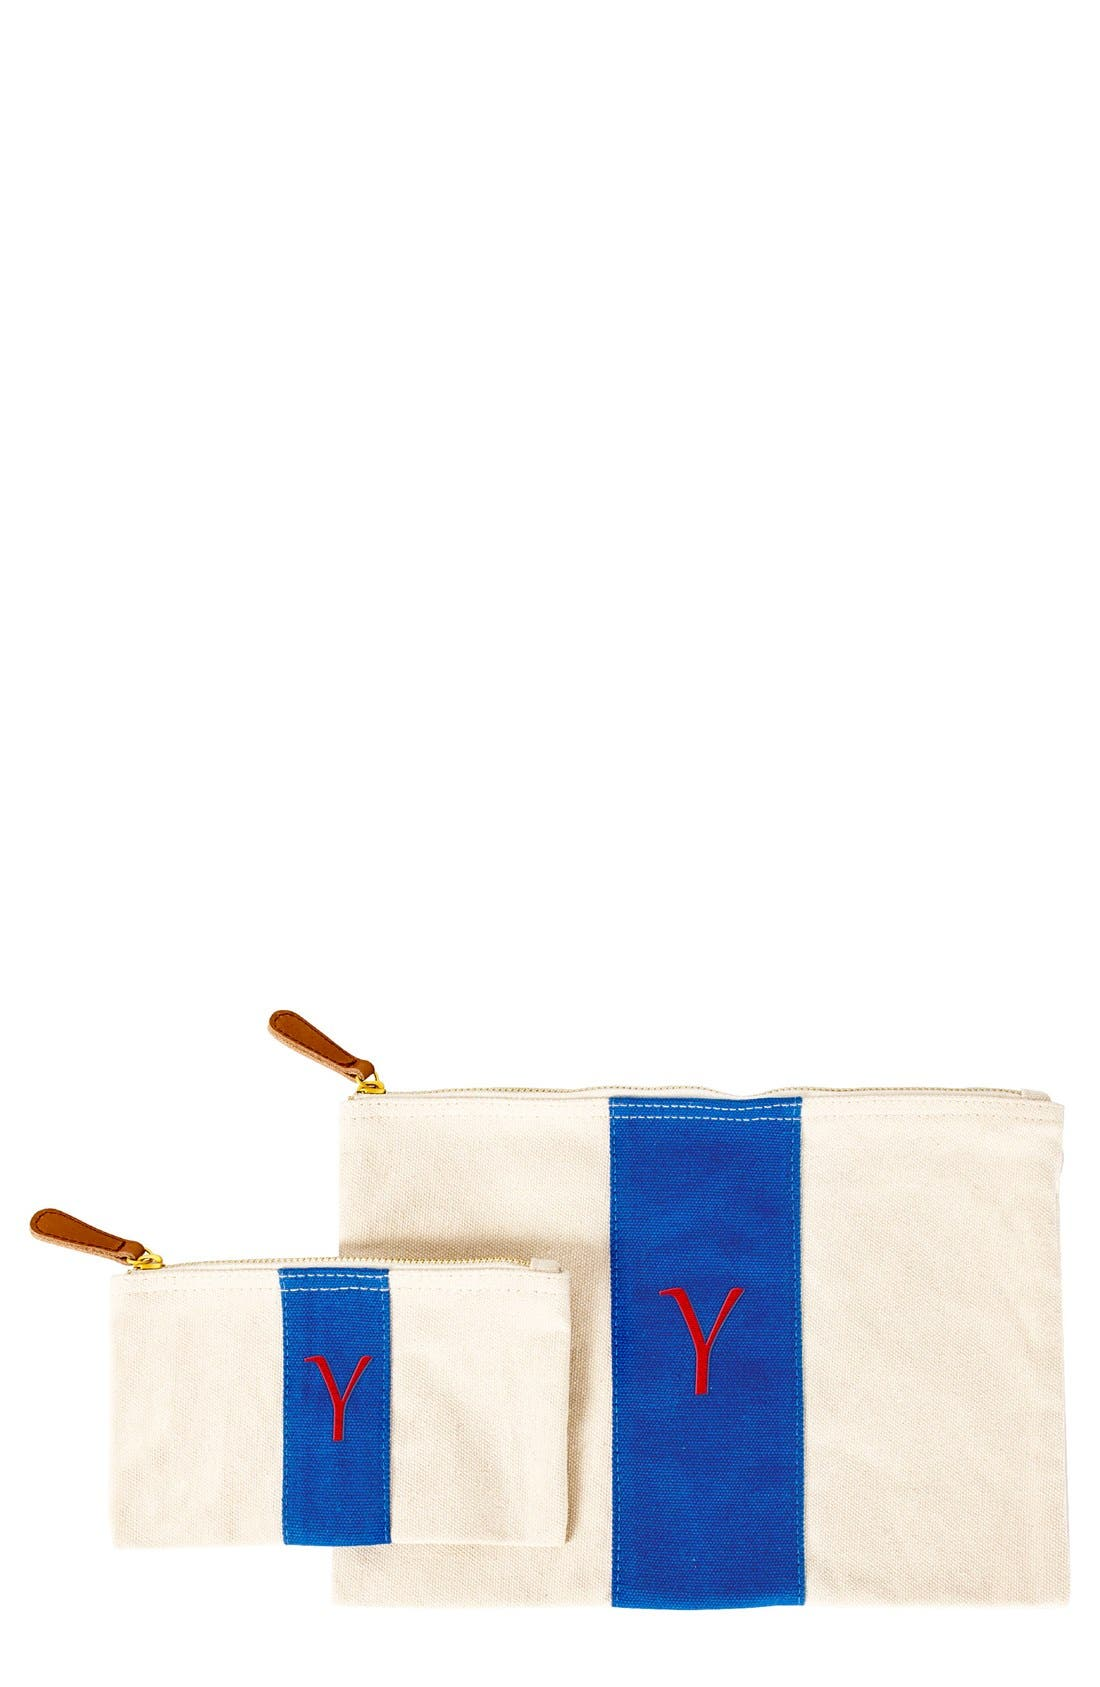 Alternate Image 1 Selected - Cathy's Concepts Personalized Canvas Clutch